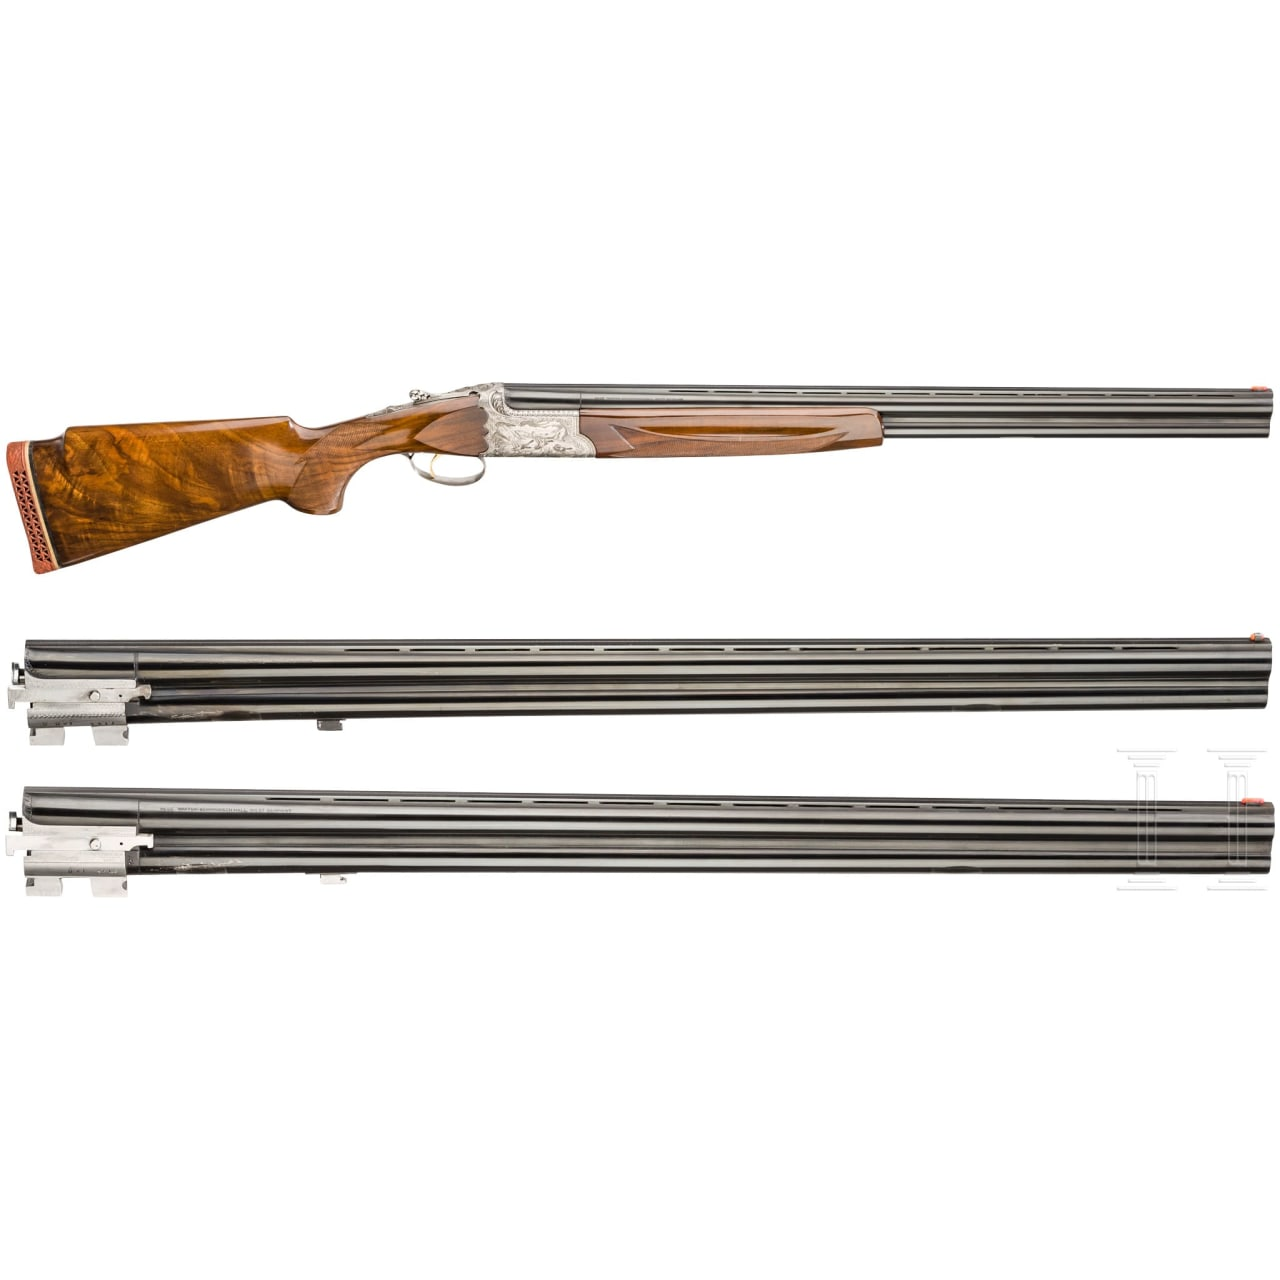 A cased over/under shotgun with two extra barrel sets, by I.A.B./Hege